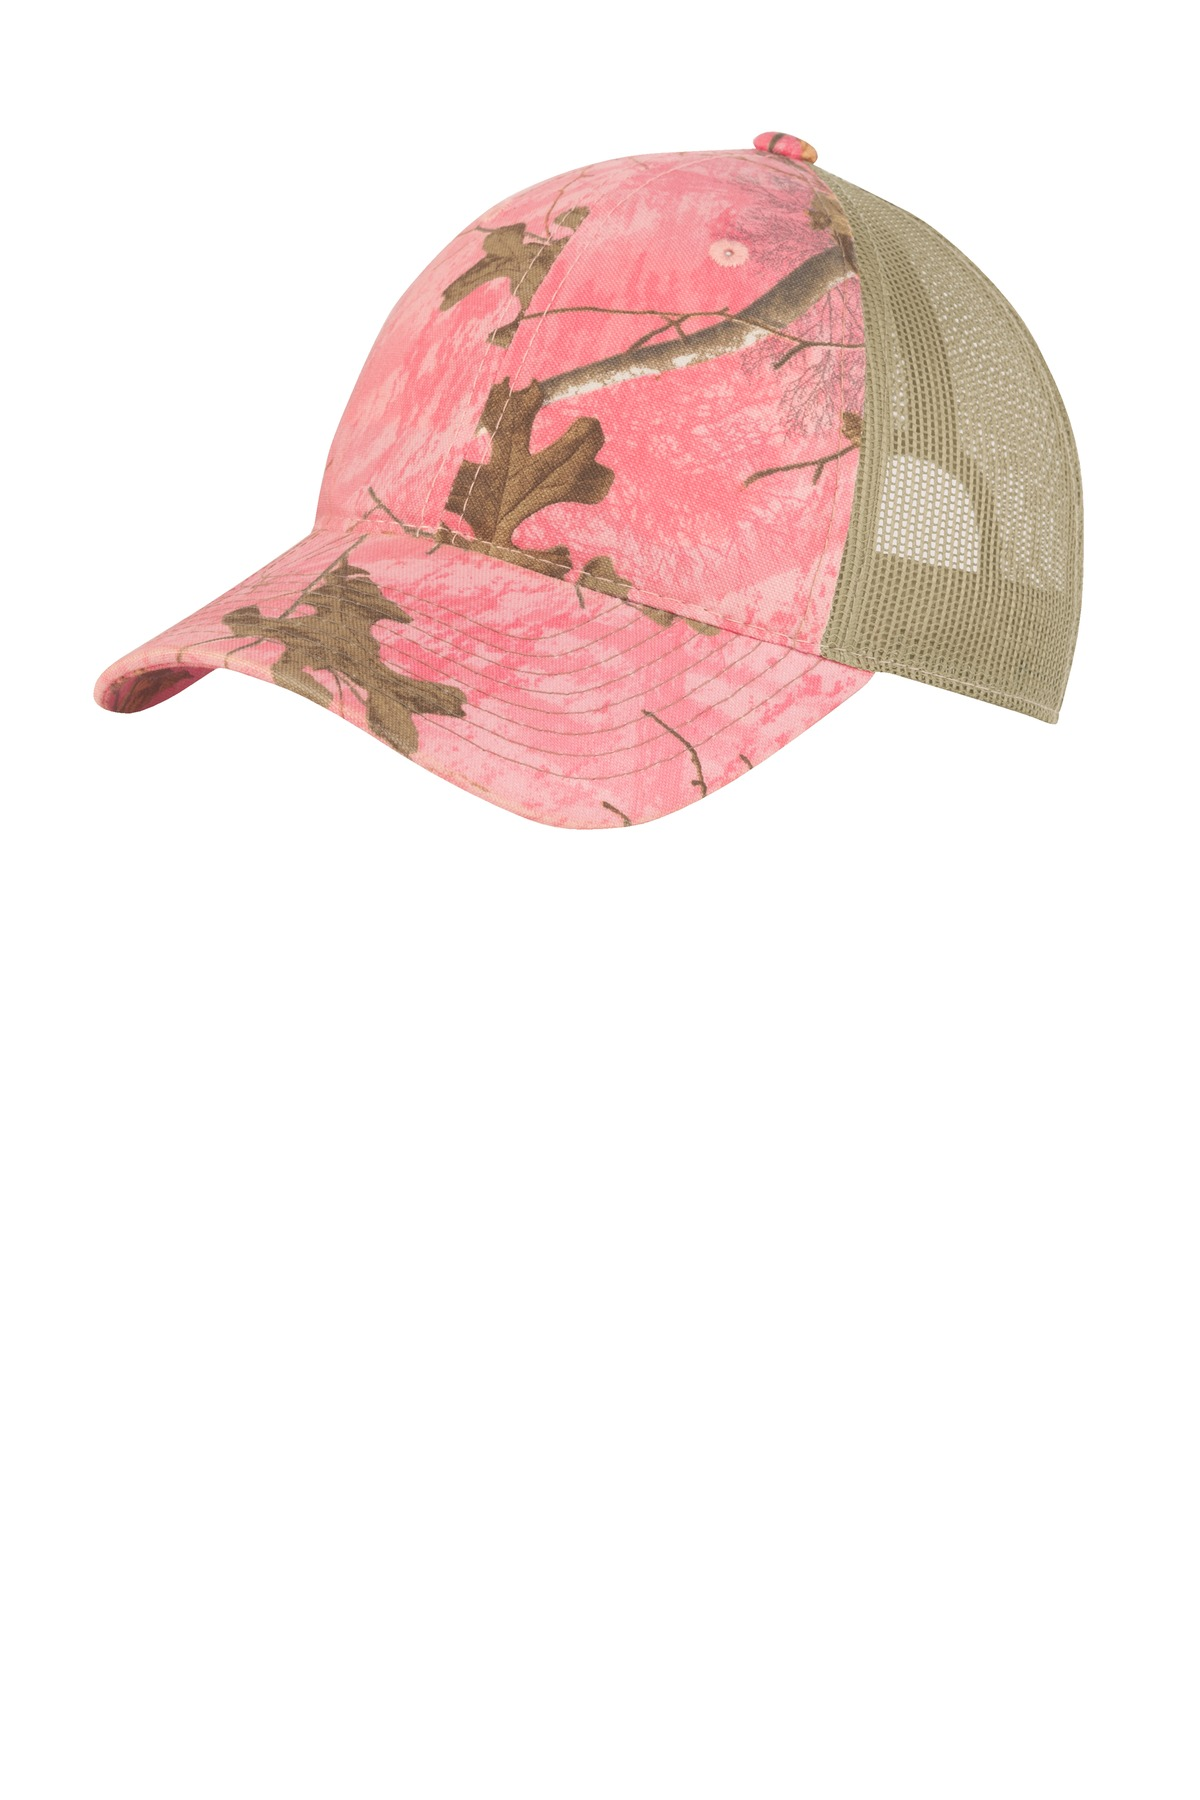 Port Authority ®  Unstructured Camouflage Mesh Back Cap. C929 - Realtree Xtra Pink/ Tan